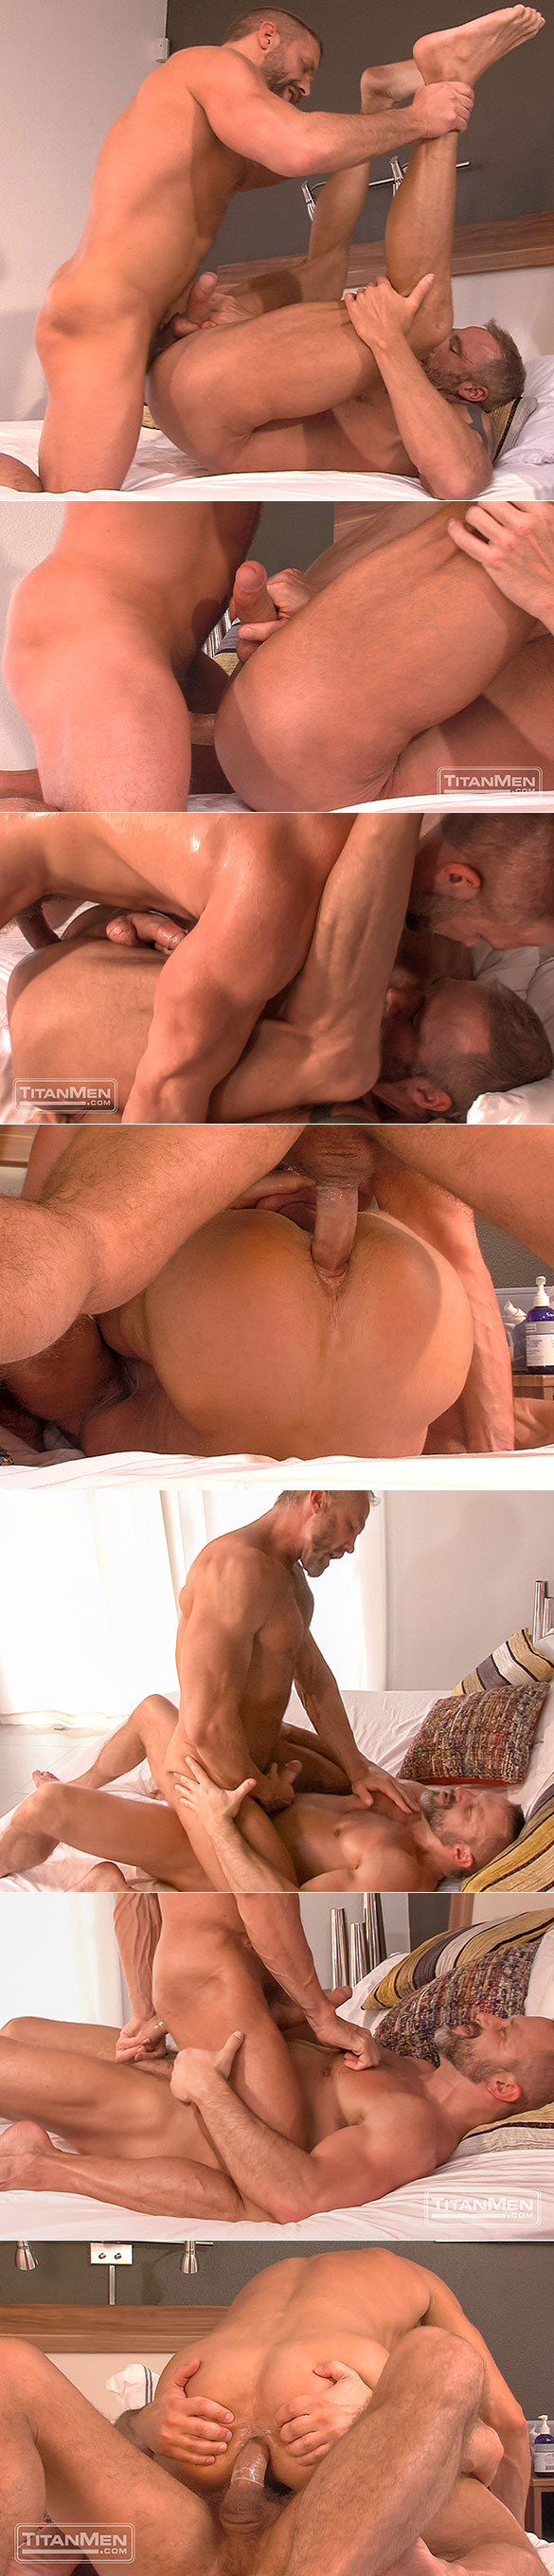 """TitanMen: Dirk Caber and Dallas Steele pound each other in """"Blue Collar Ballers"""""""